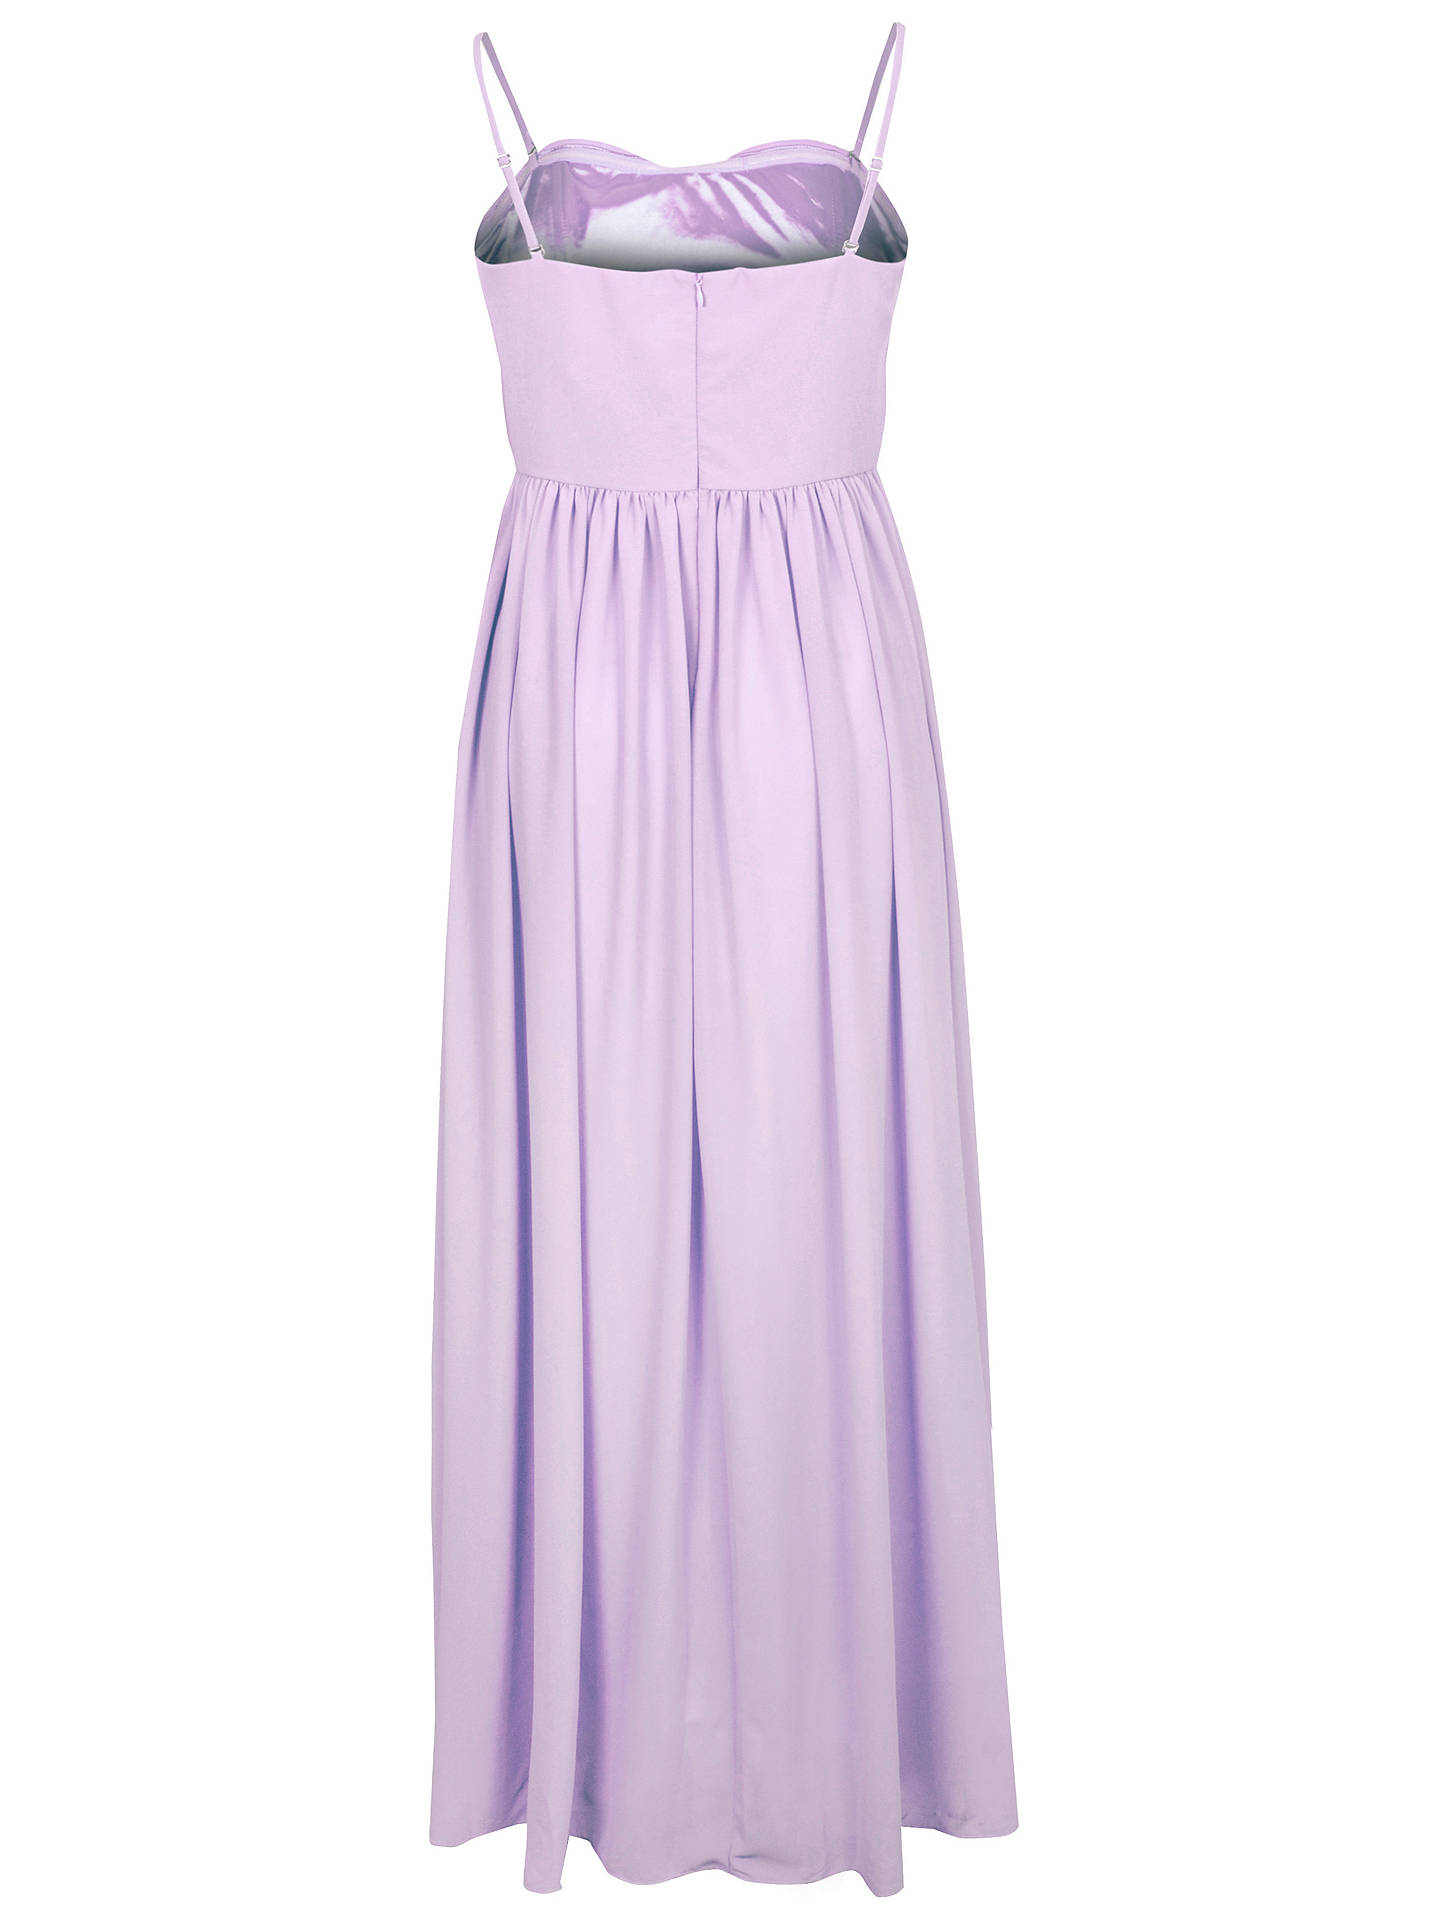 Buy True Decadence Bow Pleat Maxi Dress, Light Pink, 8 Online at johnlewis.com